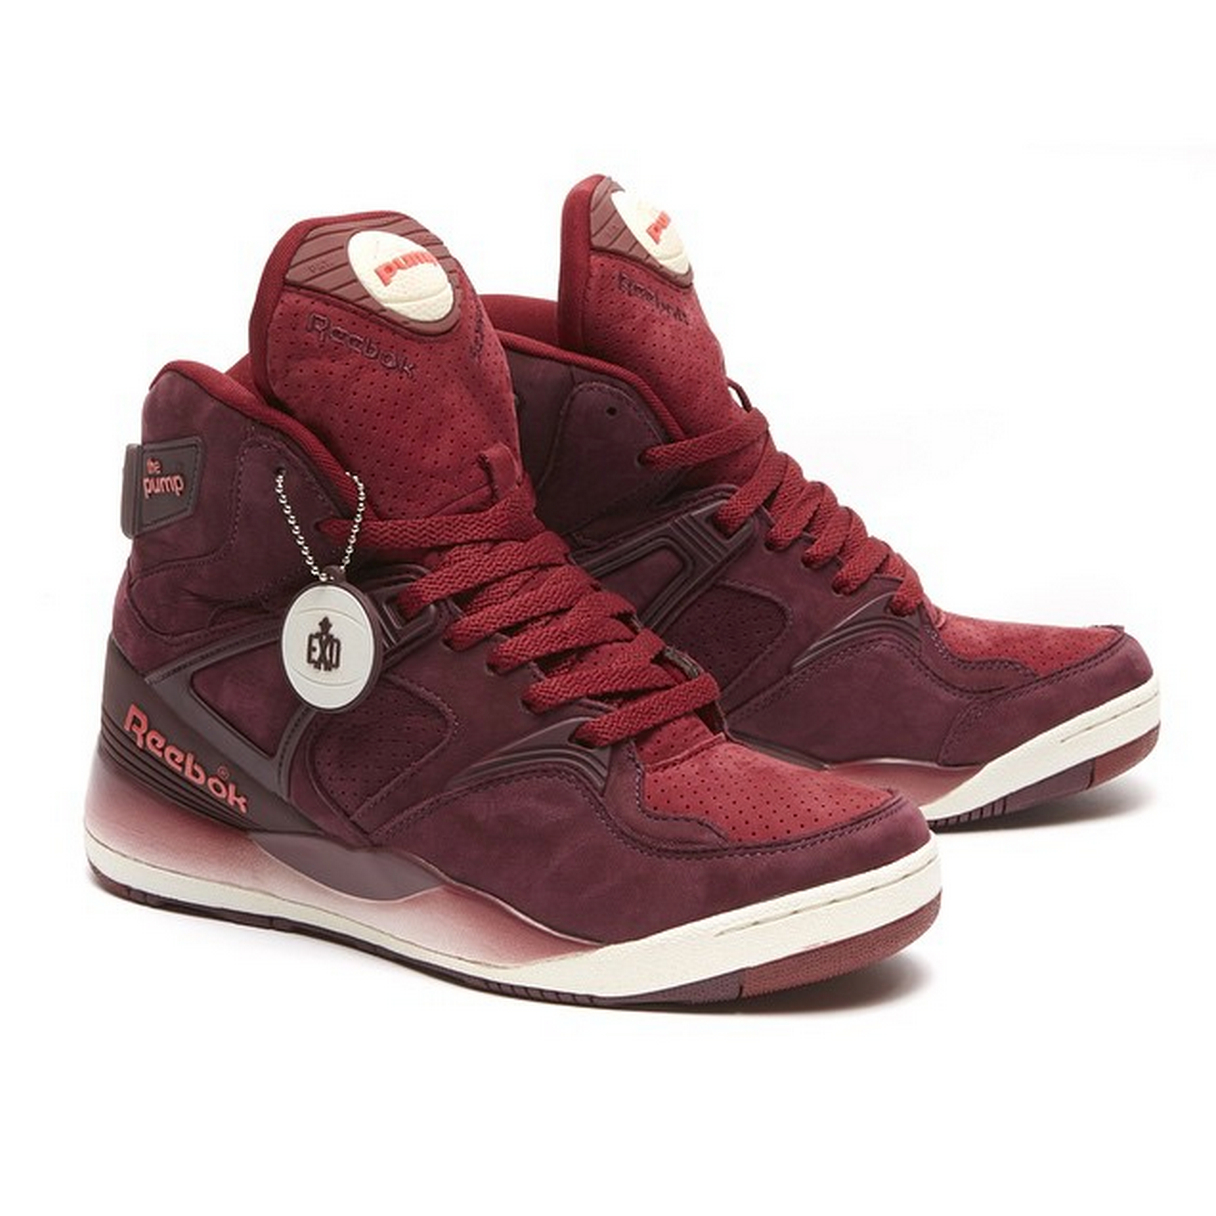 2fbd156baa8c LimitEDitions x Reebok Pump 25th Anniversary. limitededitions-reebok-pump-6